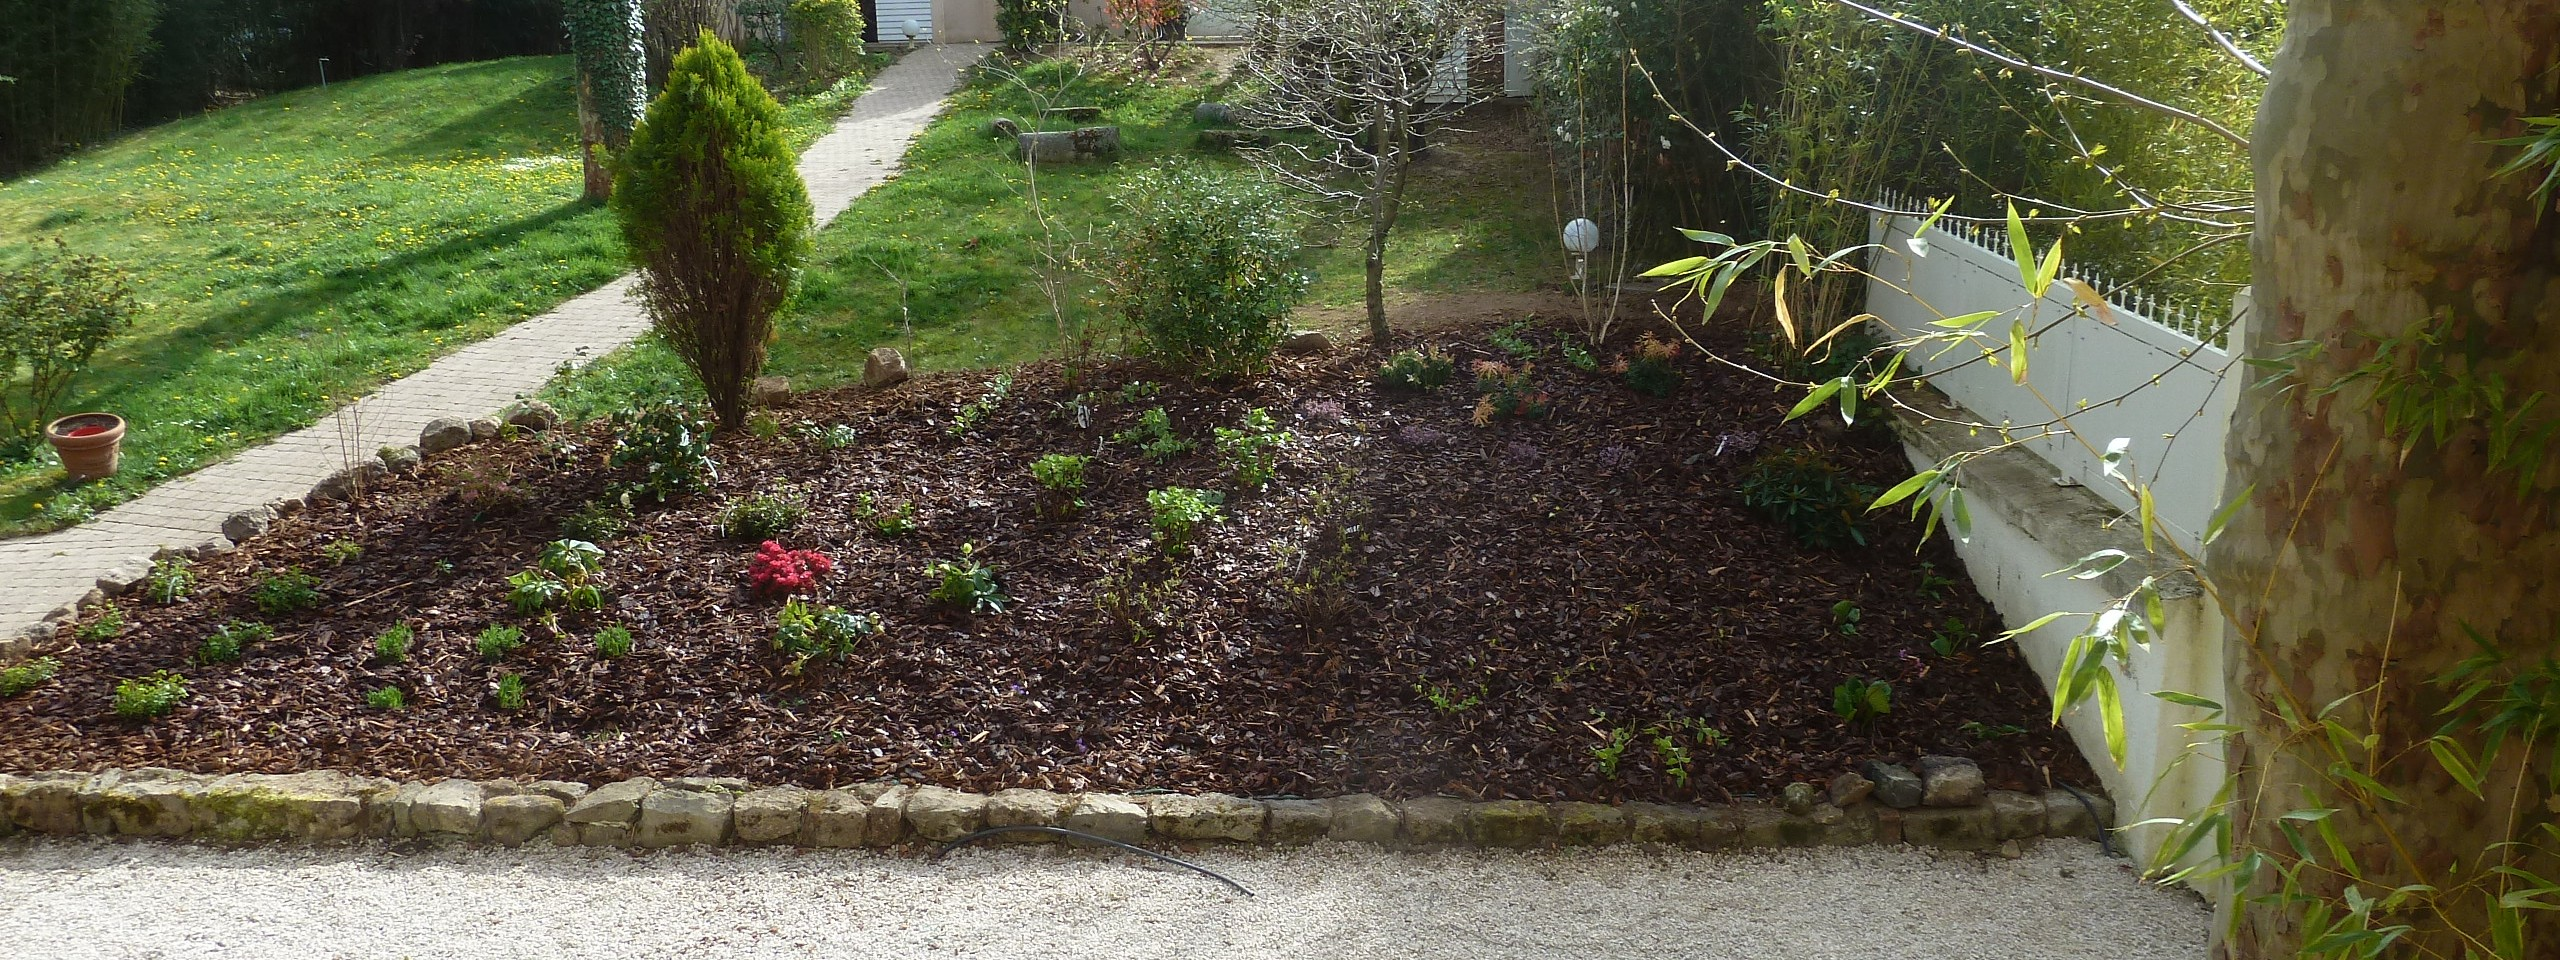 Am nagement talus jardins et bassins for Amenagement talus jardin